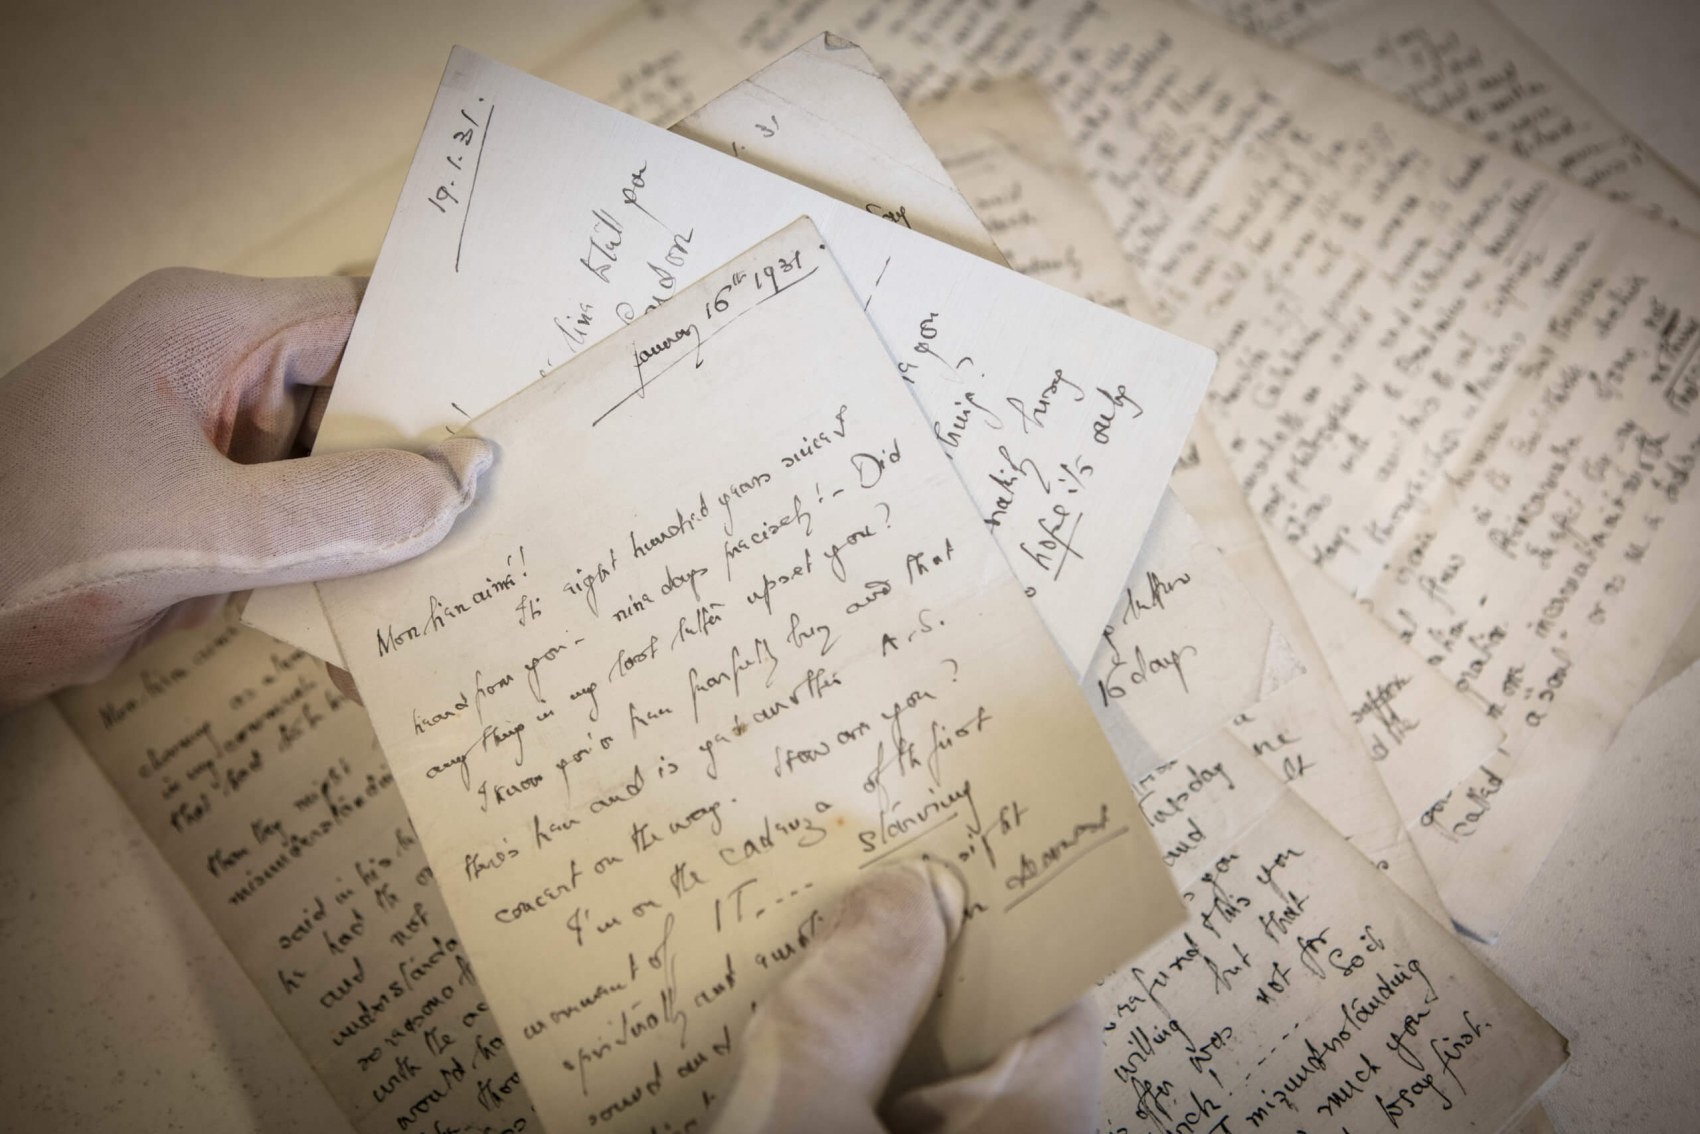 Another favourite item of Stuart's in the RCS archive is correspondence between two renowned musicians. Stuart holds letters written between the musicians Erik Chisholm who was a student and composer Kaikhosru Shapurji Sorabji in the 1930s.